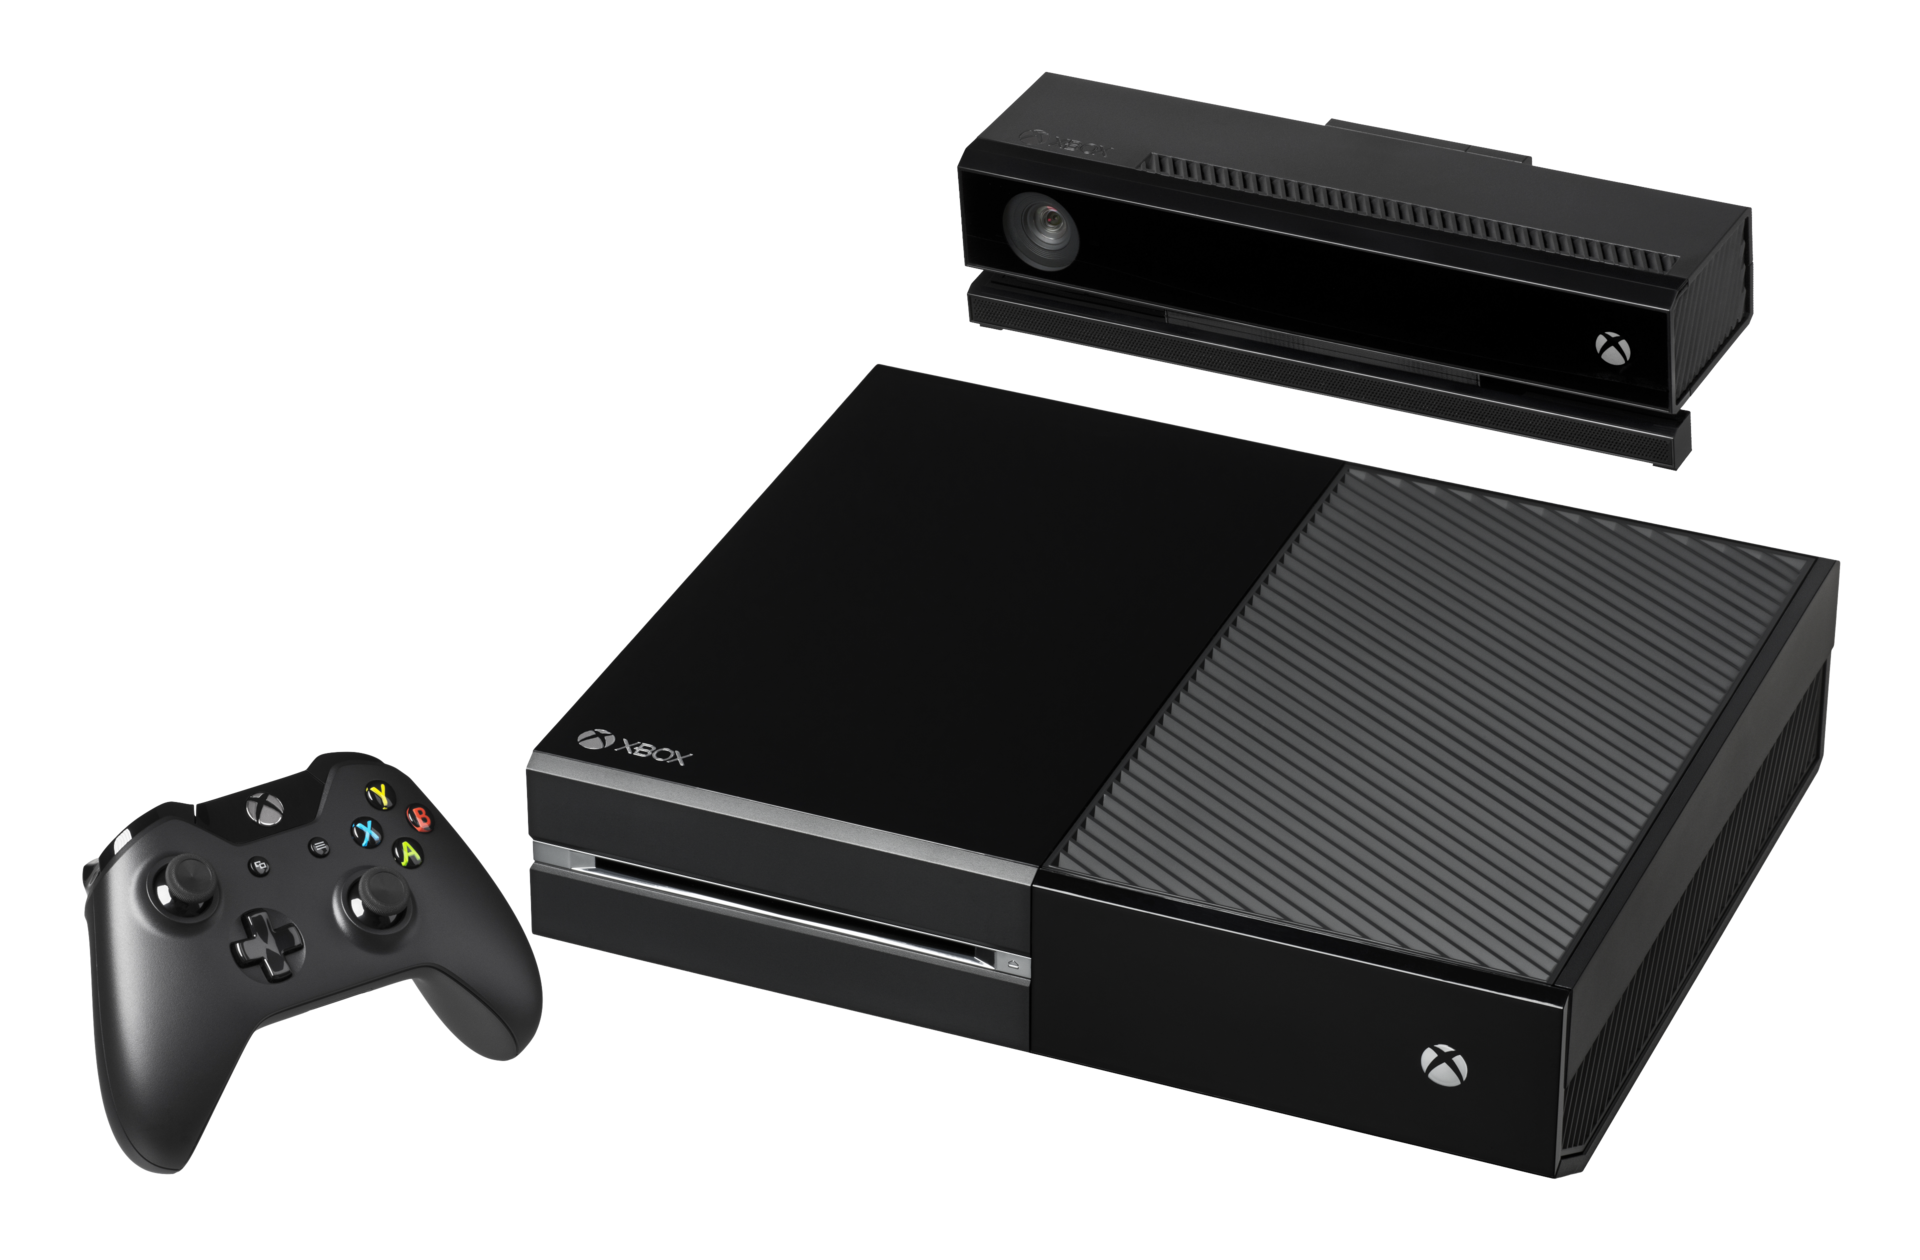 microsoft and the xbox one Microsoft may not have overhauled the performance of the xbox one with the xbox one s, but it has otherwise addressed almost every shortcoming or ageing aspect to the original console.